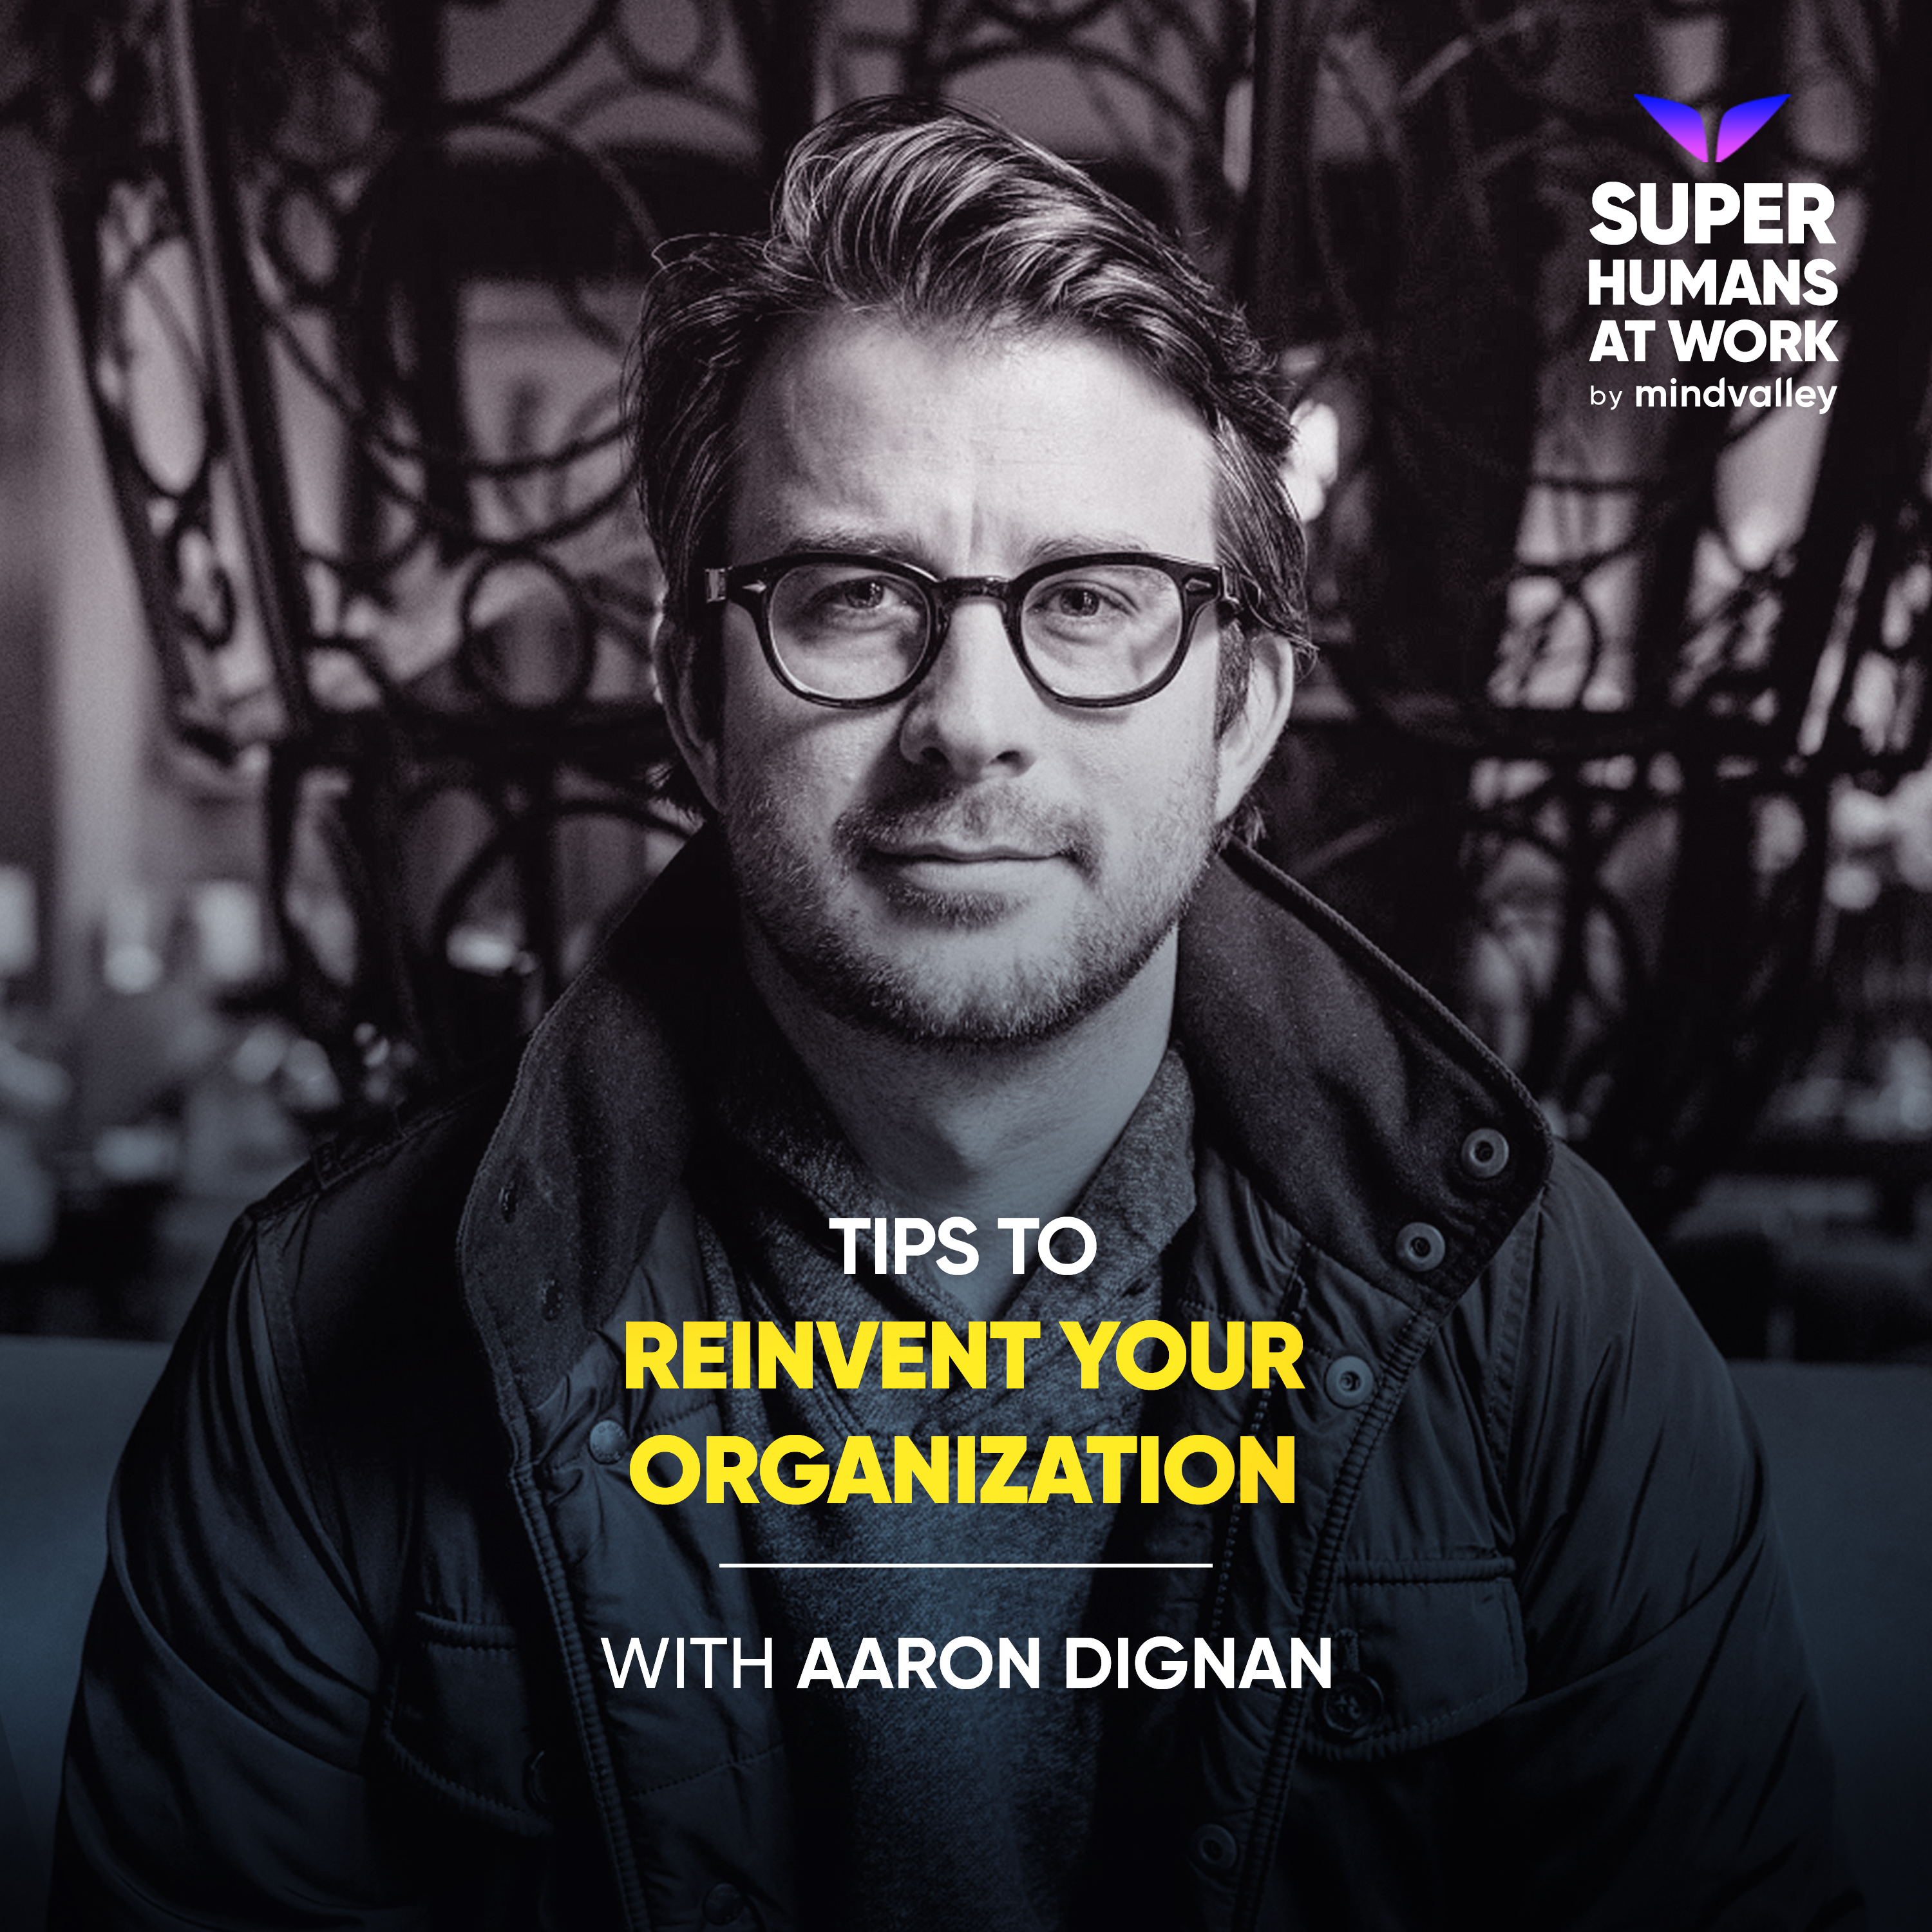 Tips To Reinvent Your Organization - Aaron Dignan